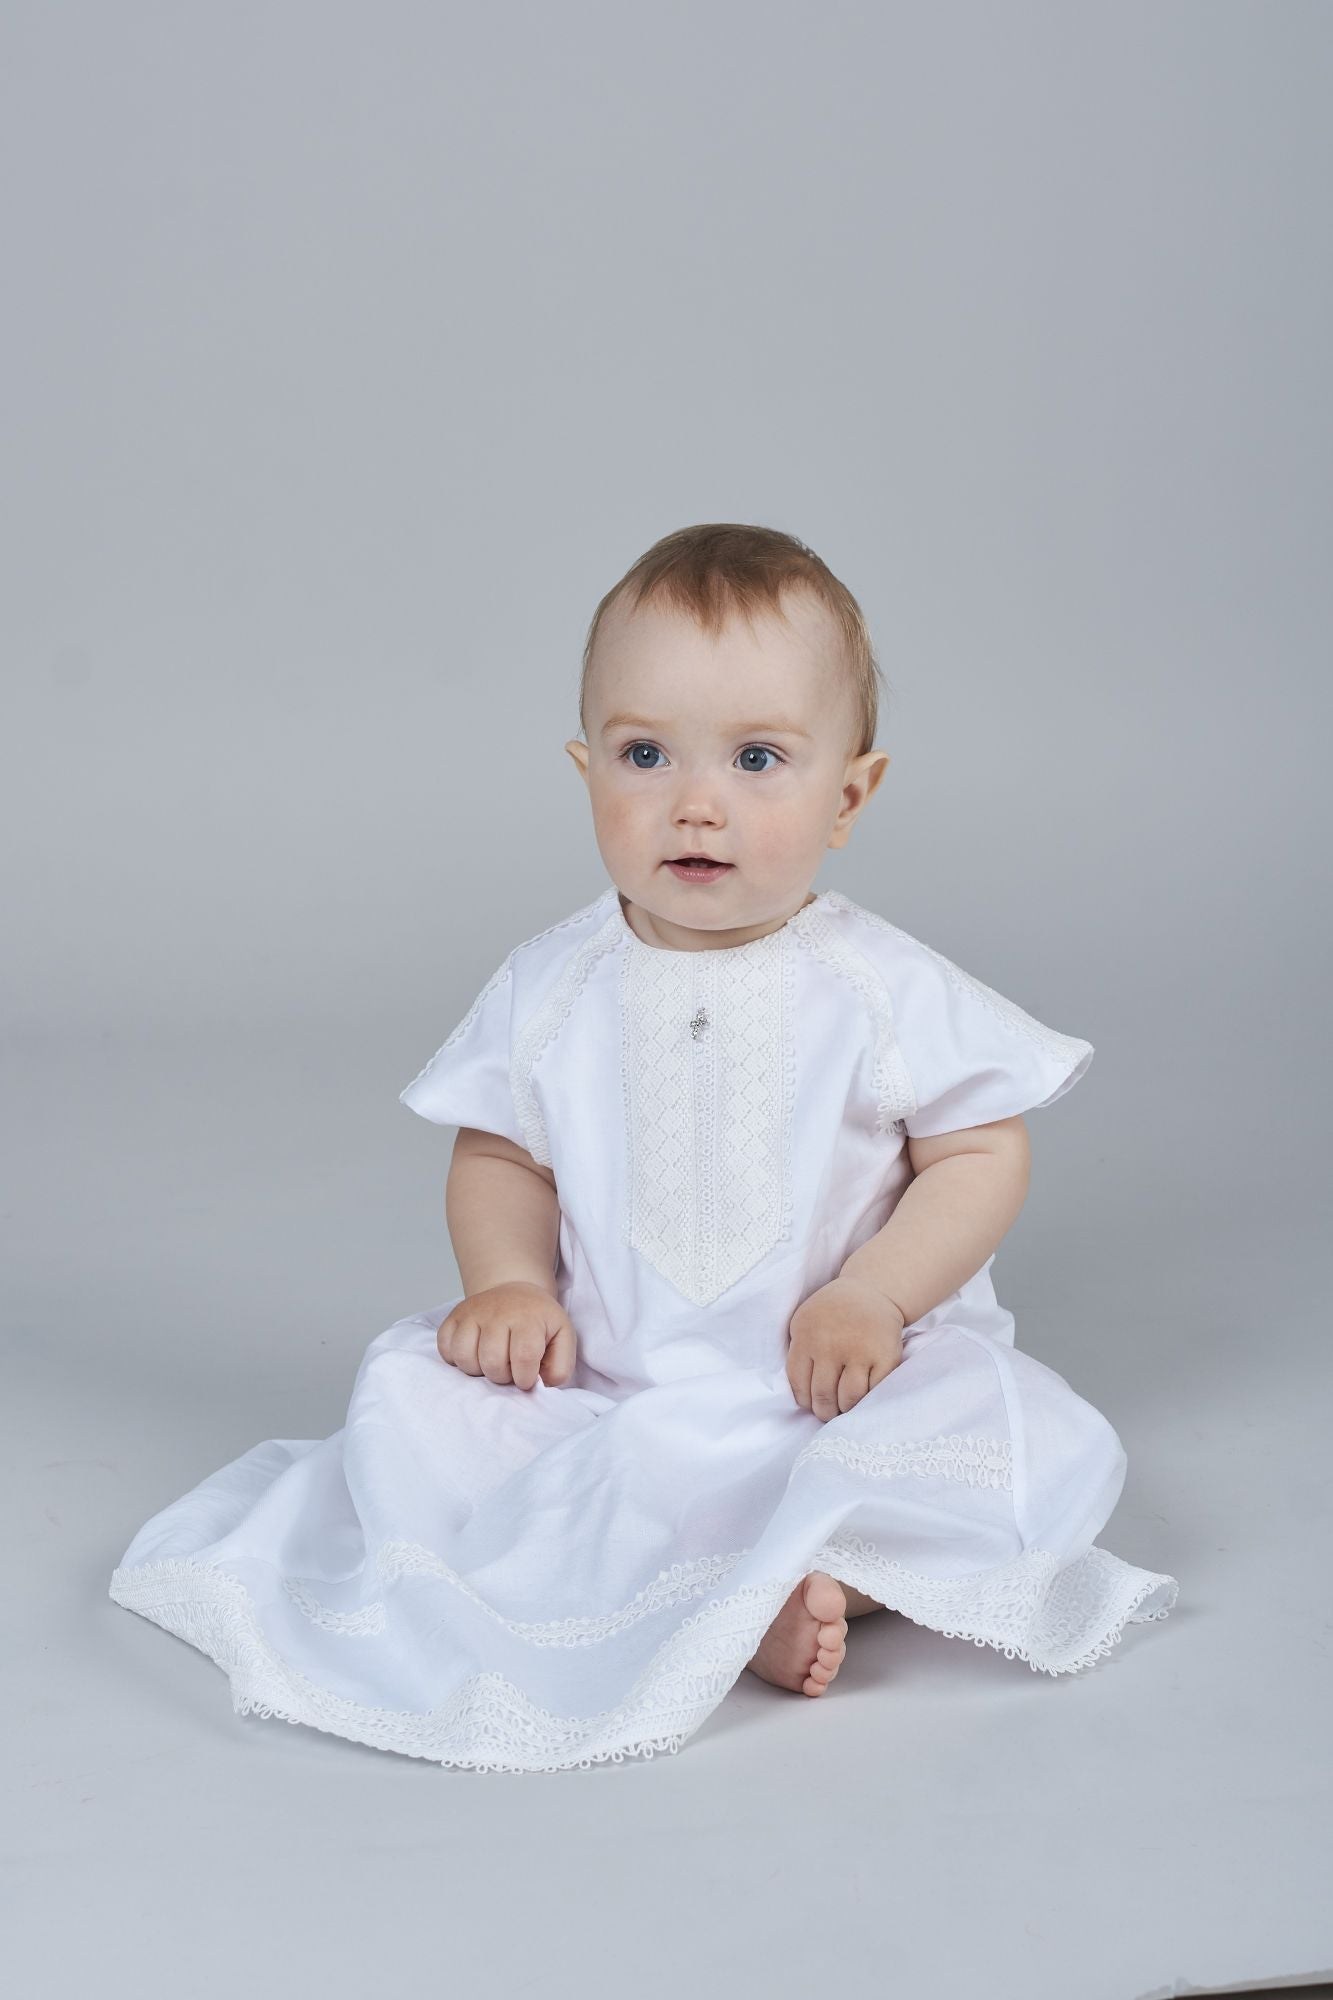 Crochet Lace Trim Christening and Baptismal Shirt